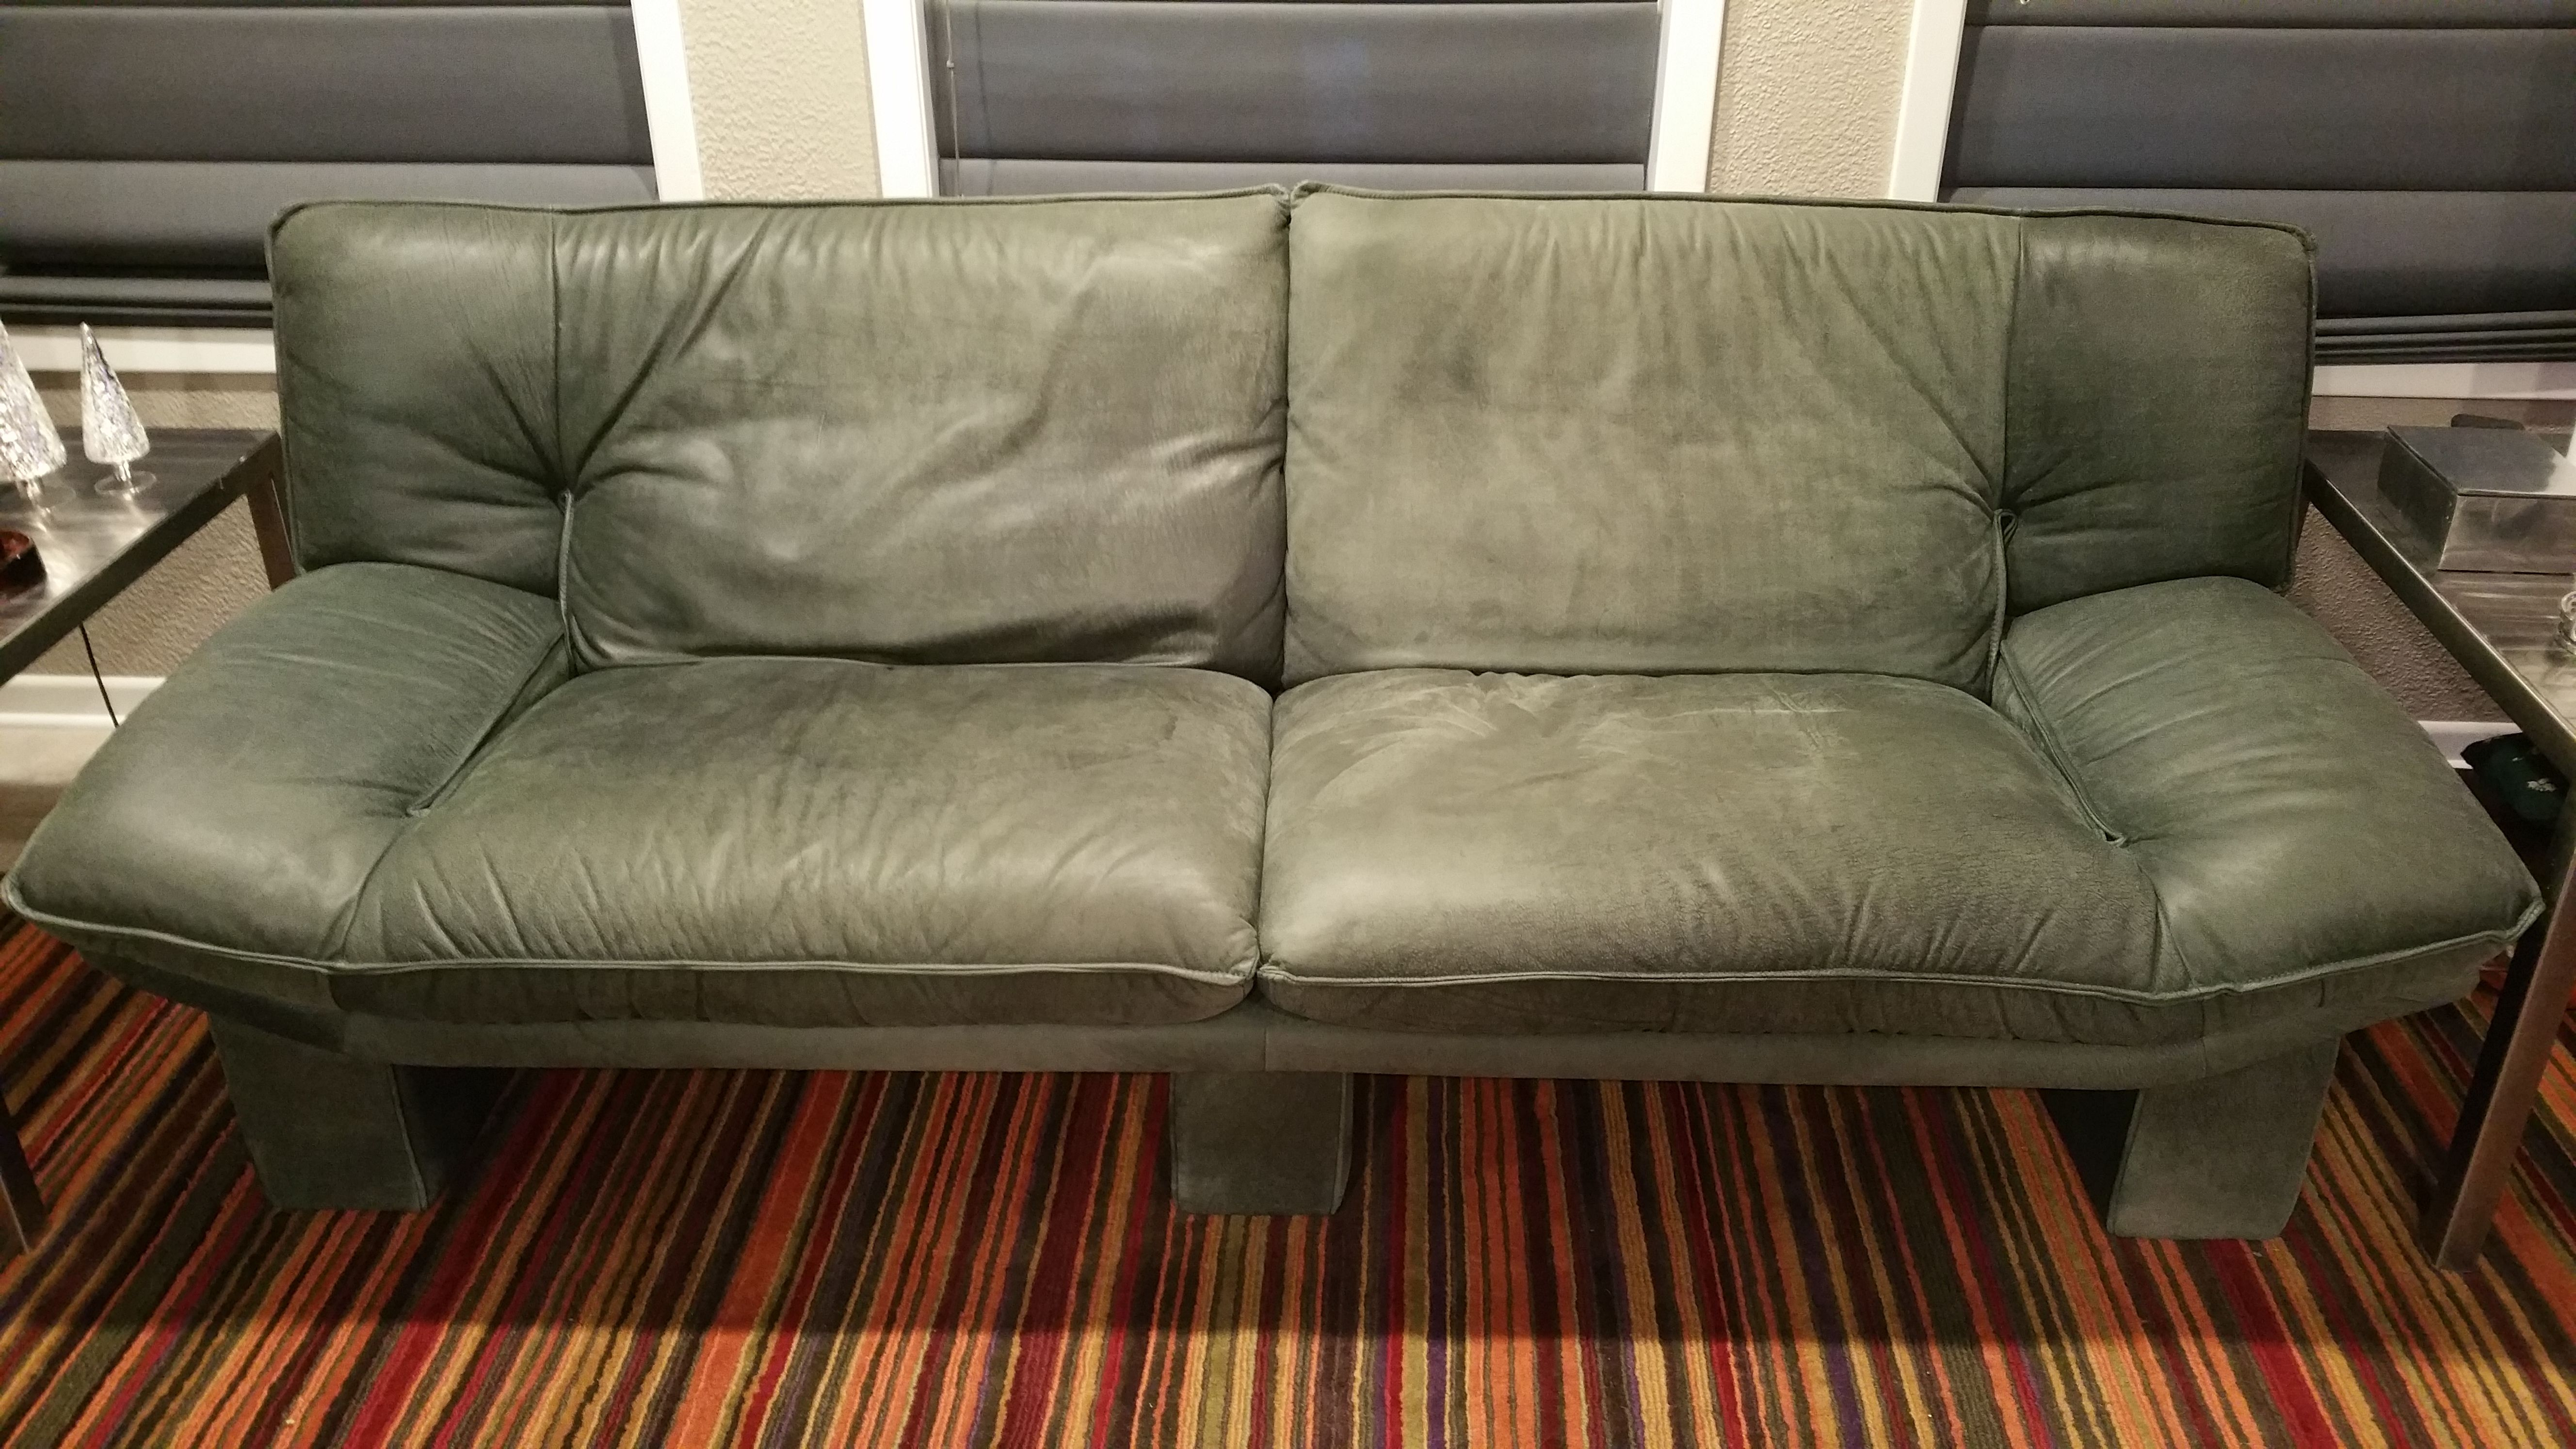 Urine On Leather Sofa Di 2020